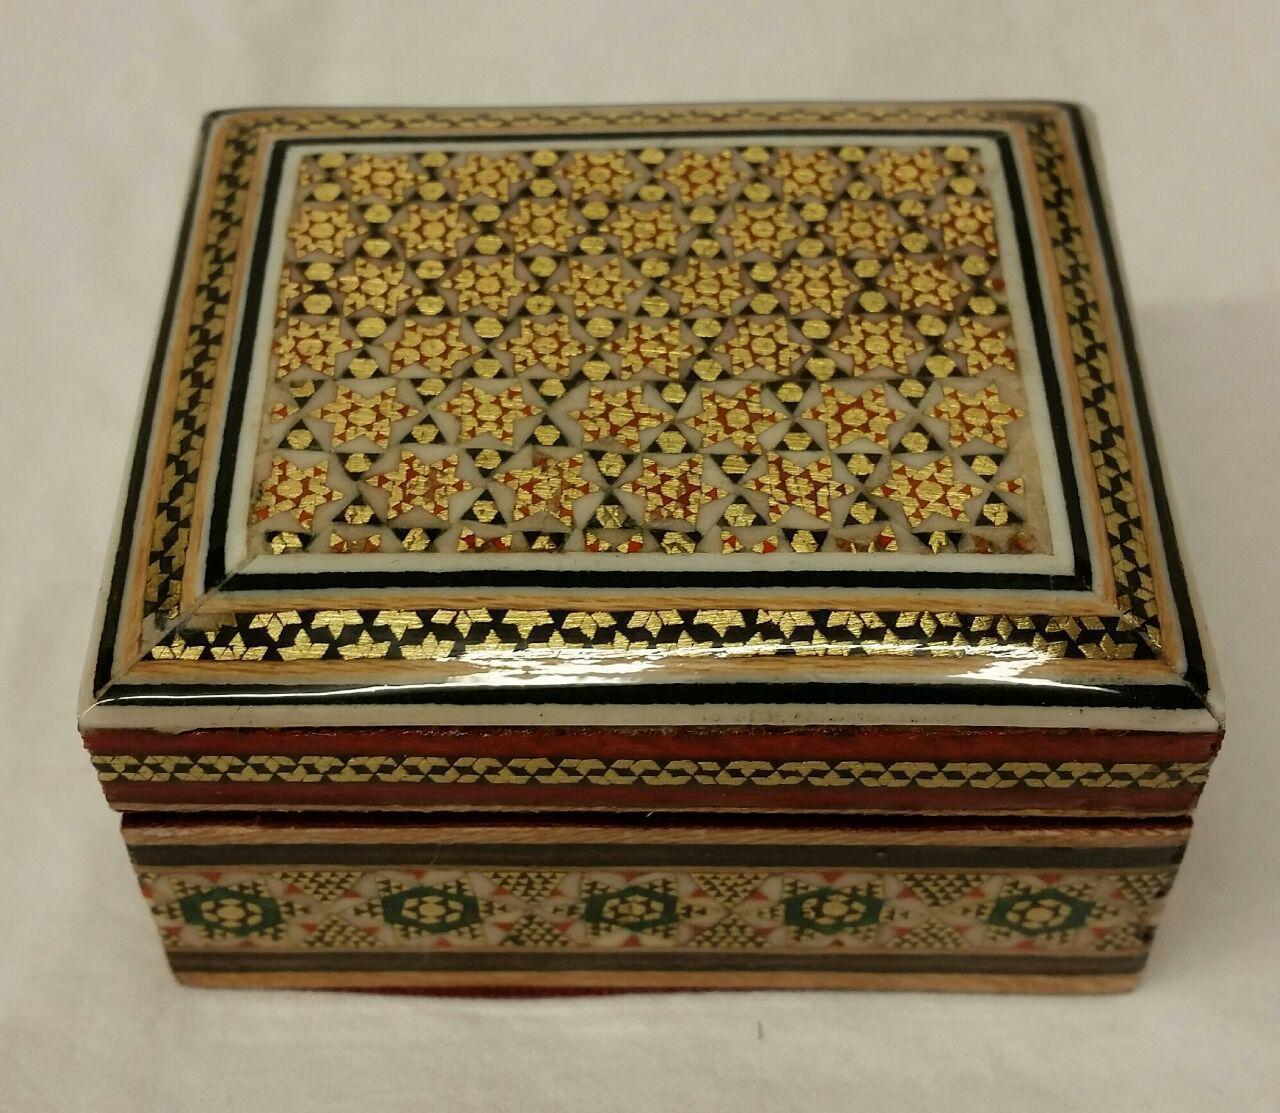 Khatam Jewelry Box code 13